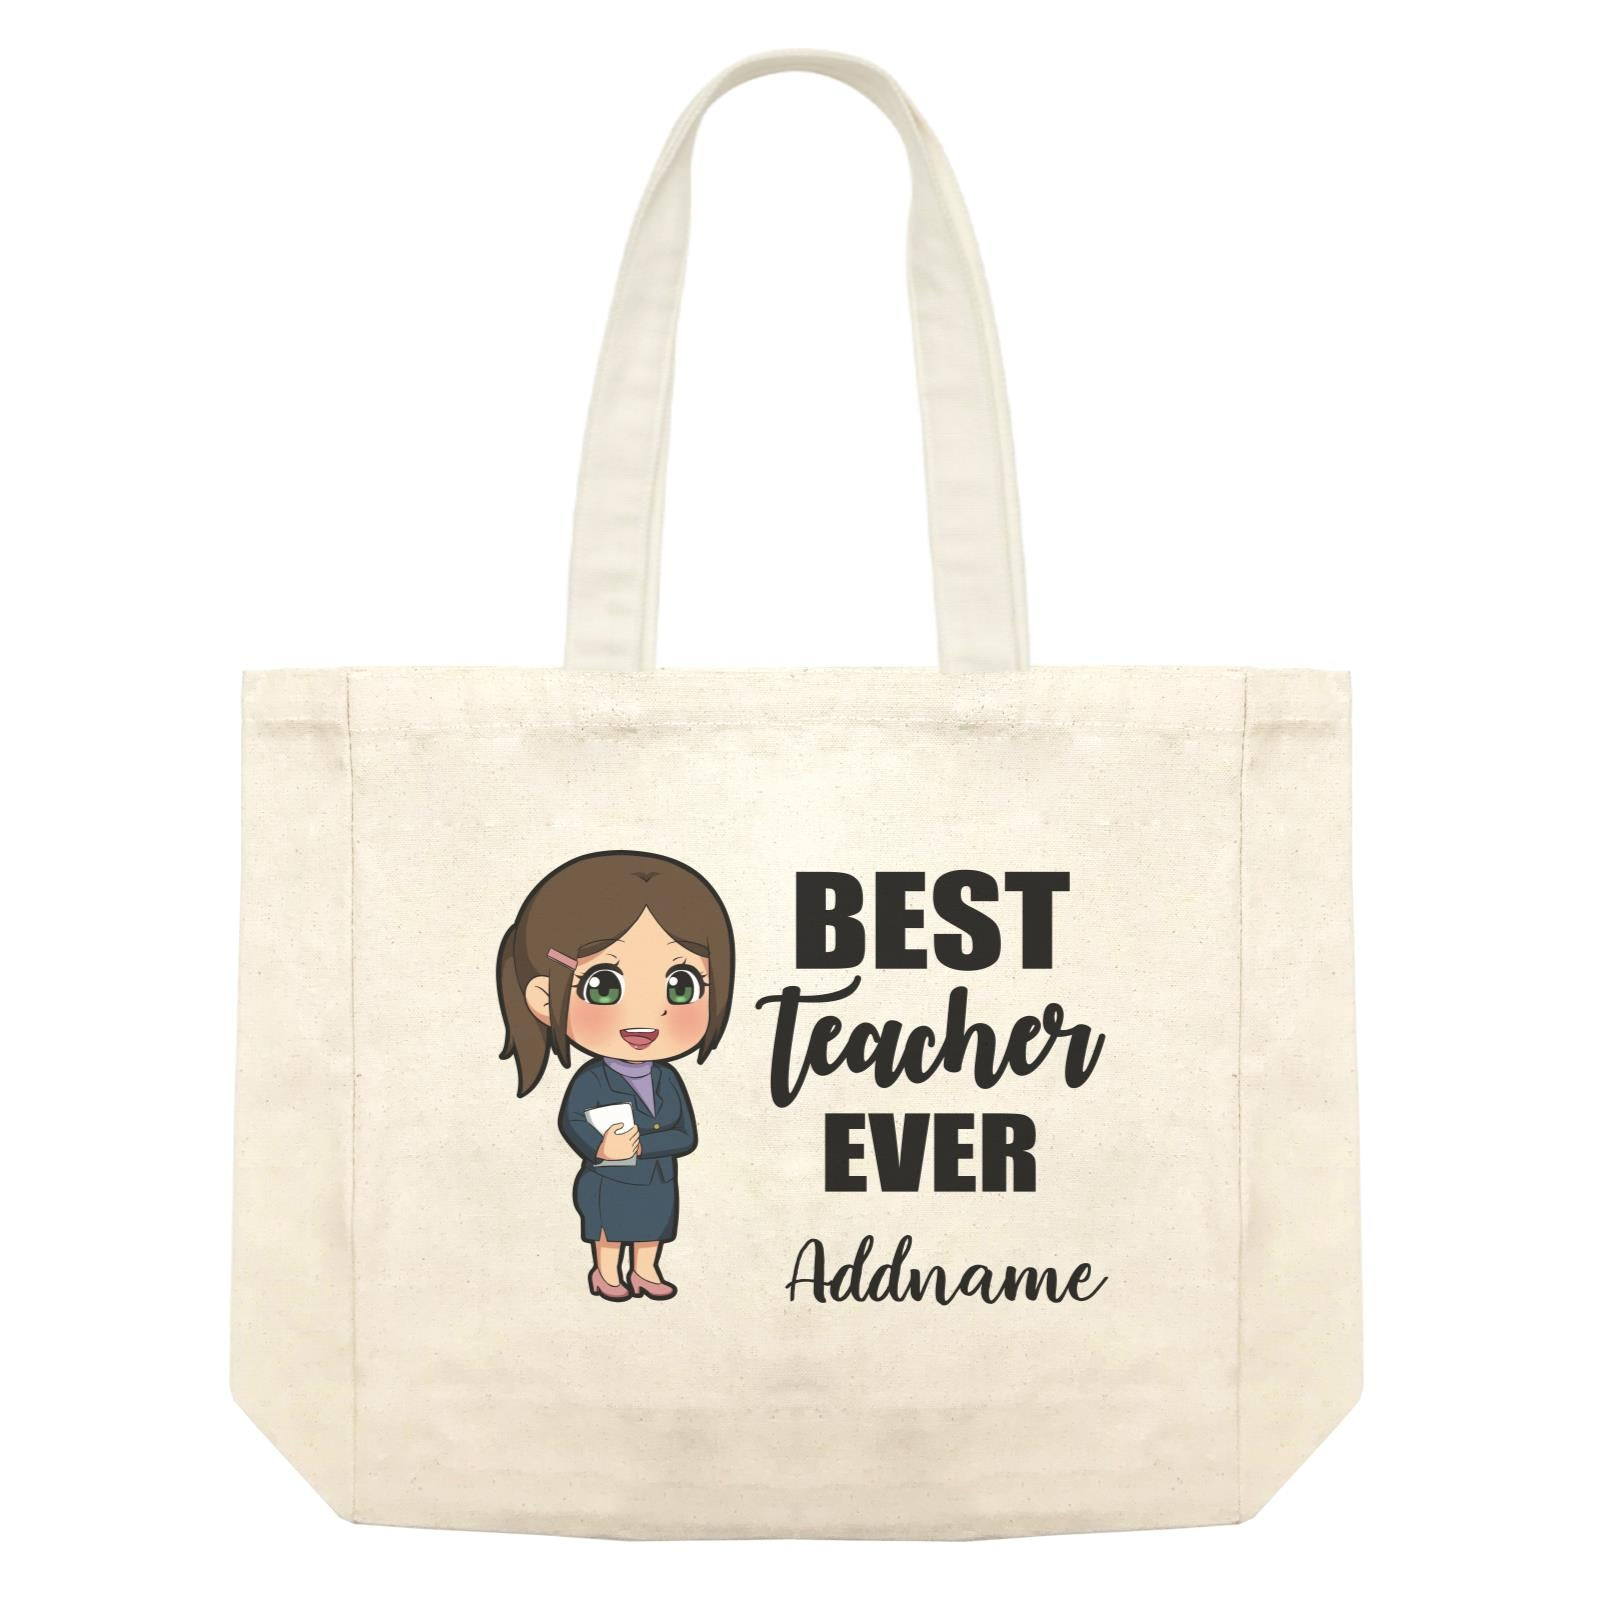 Chibi Teachers Chinese Woman Best Teacher Ever Addname Shopping Bag